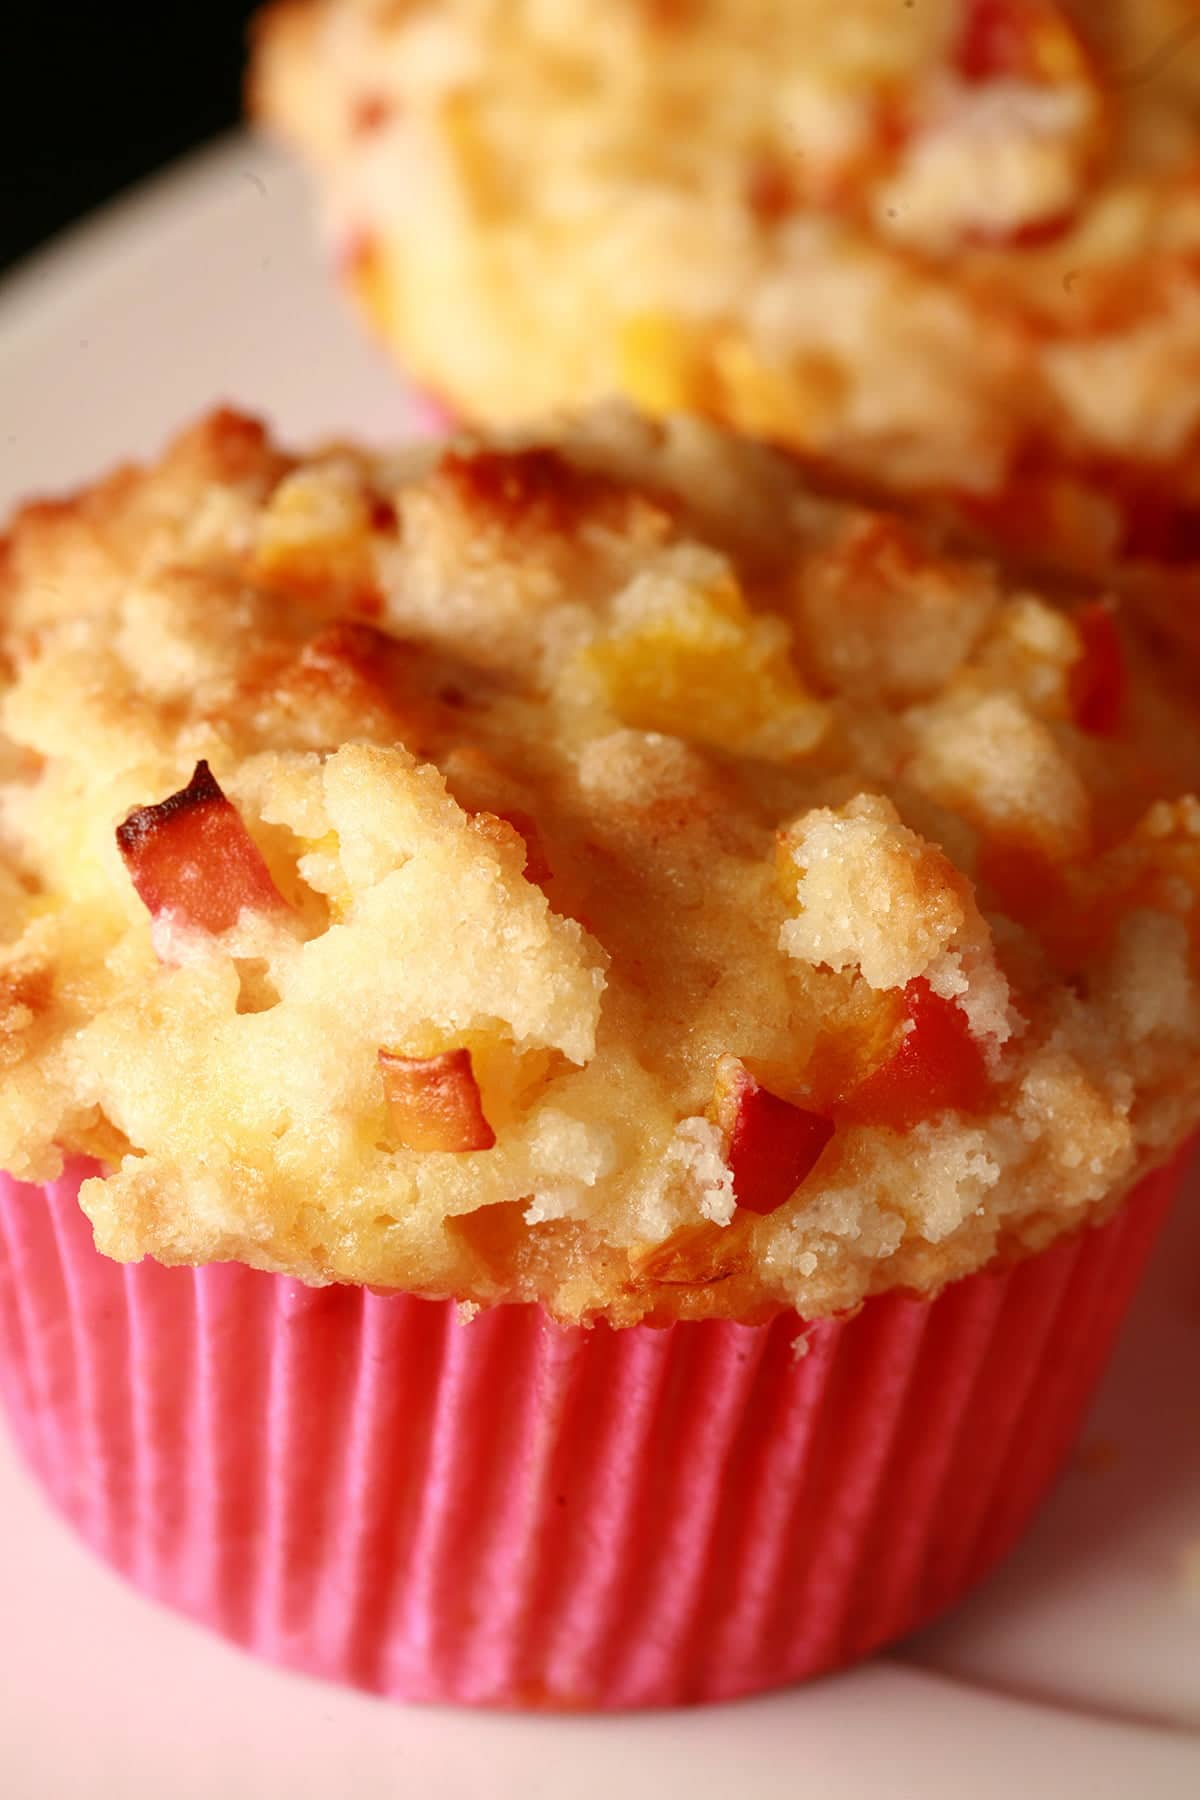 A close up photo of a Peach cobbler muffin.  The muffin has small pieces of peach and streusel on top, and is in a pink liner.